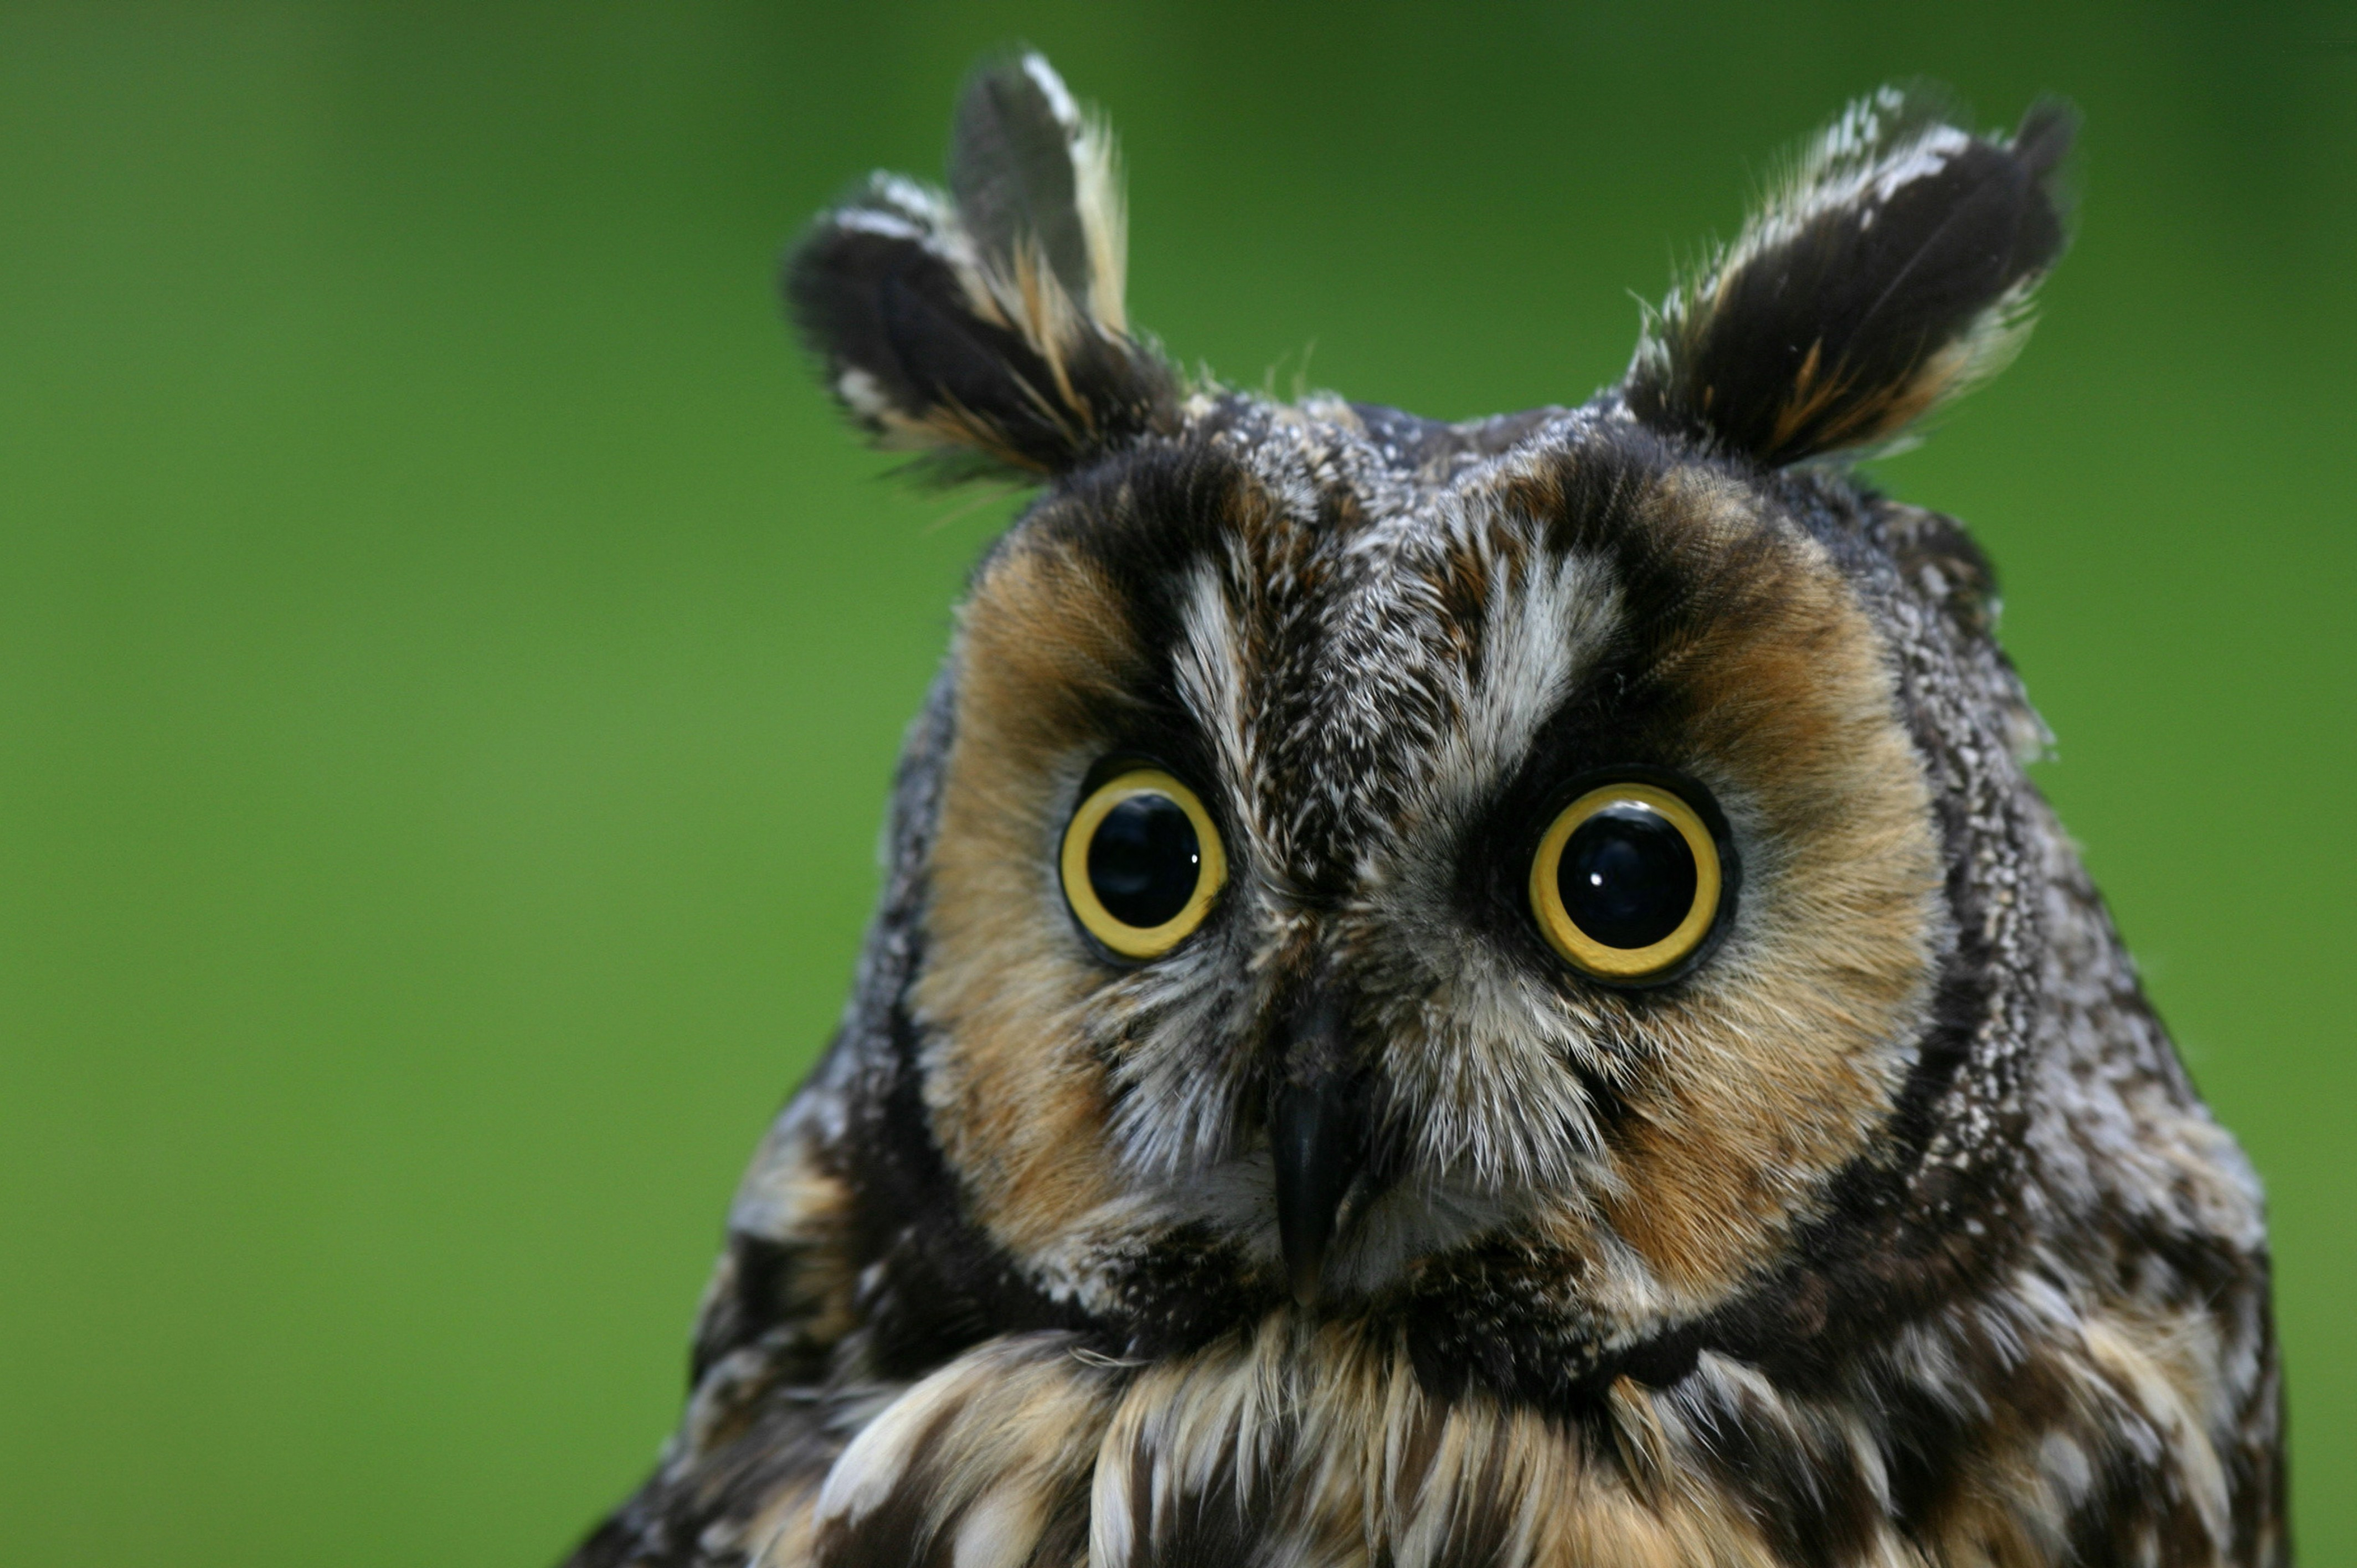 Cute Wallpapers Quotes For Girls Wallpaper Owl Eagle Owl Funny Nature Plumy Animals 4075